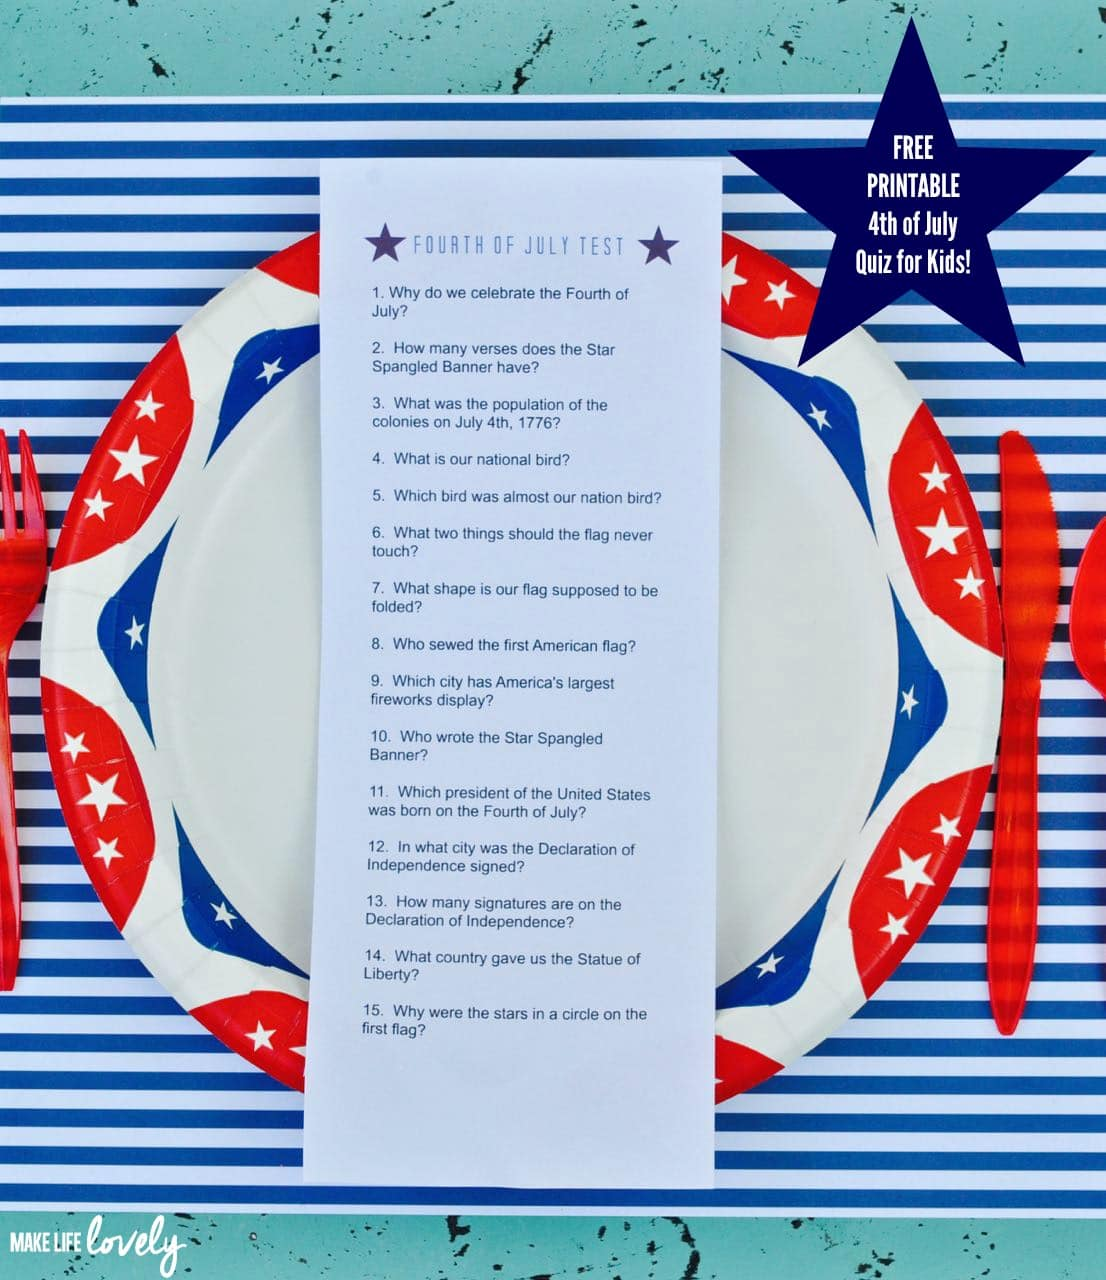 Free Printable Fourth Of July Quiz For Kids  Free Printable Quiz